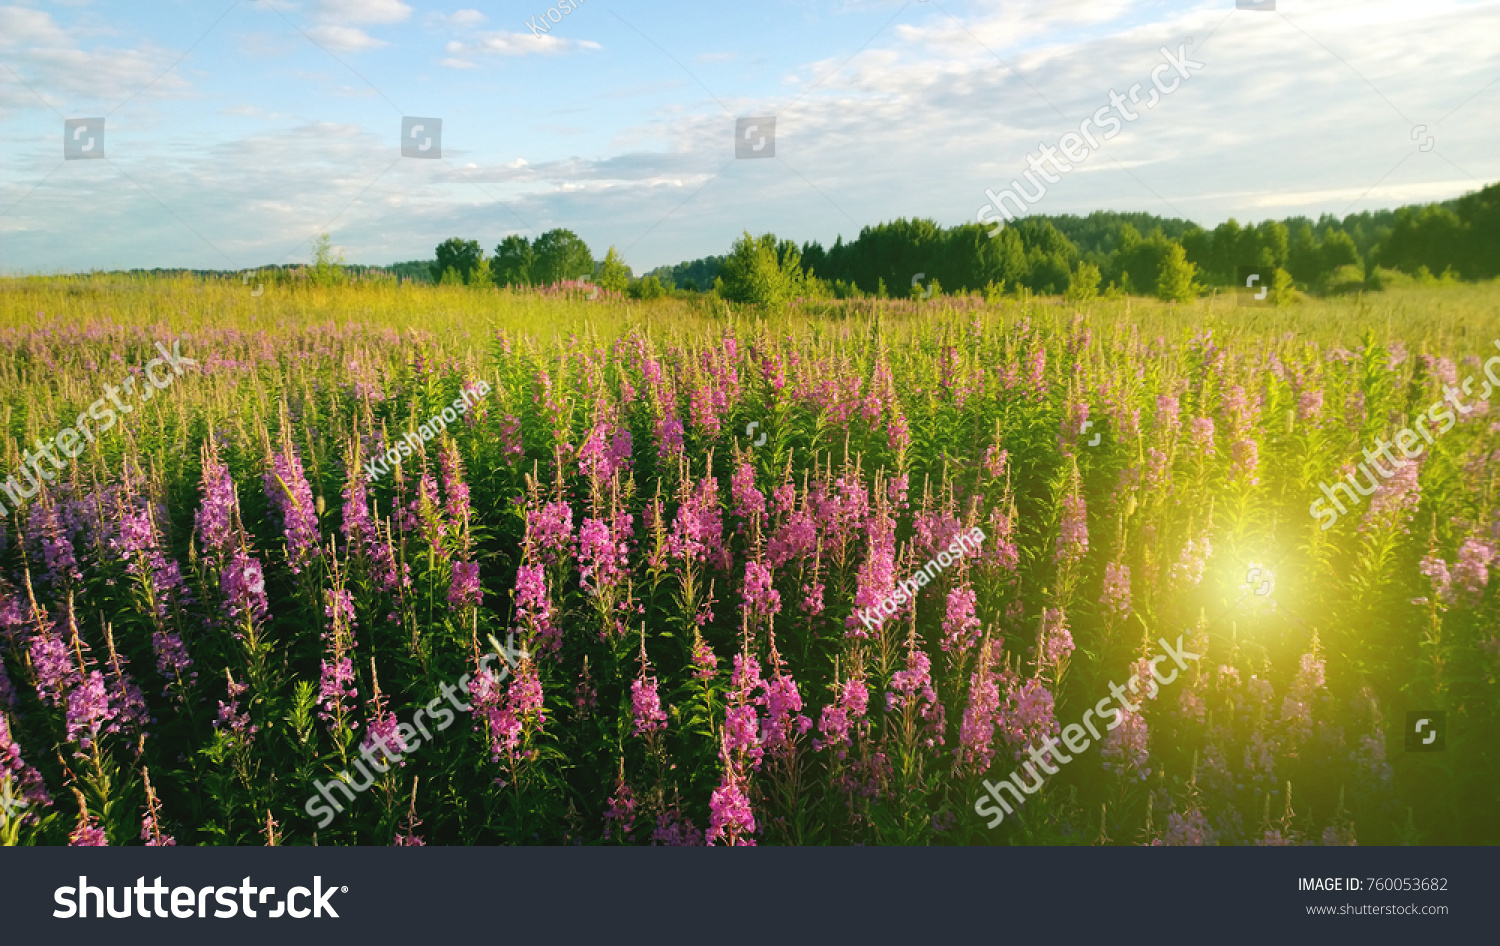 Beautiful field flowers ivantea suns rays stock photo edit now beautiful field of flowers ivan tea and the suns rays in summer warm day izmirmasajfo